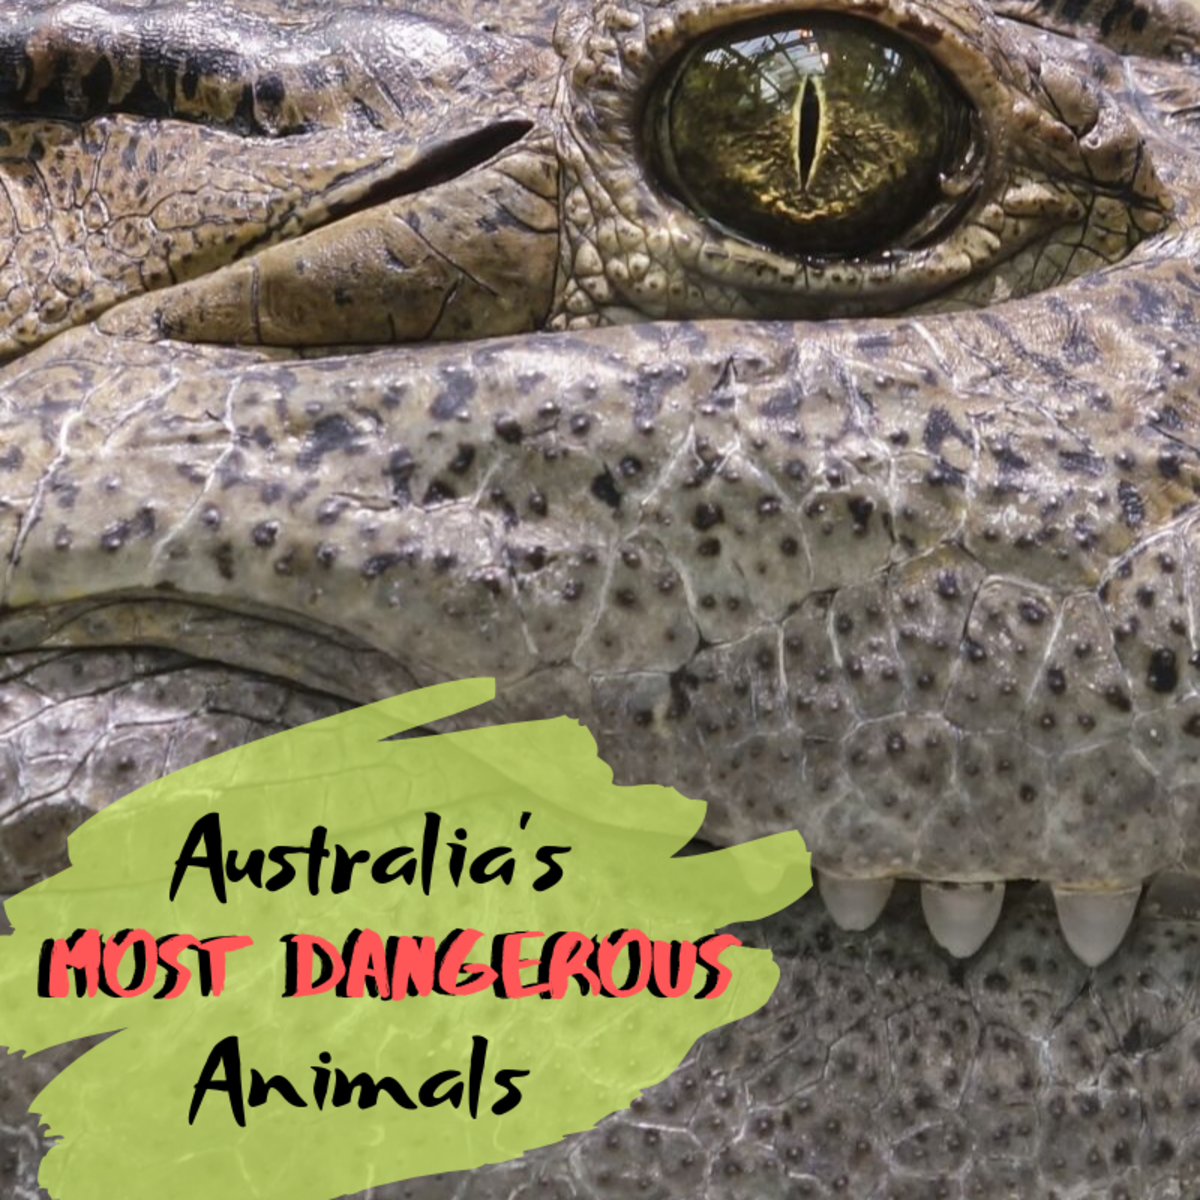 Australia is home to some of the world's most dangerous animals, and a few of them live right in residents' backyards.